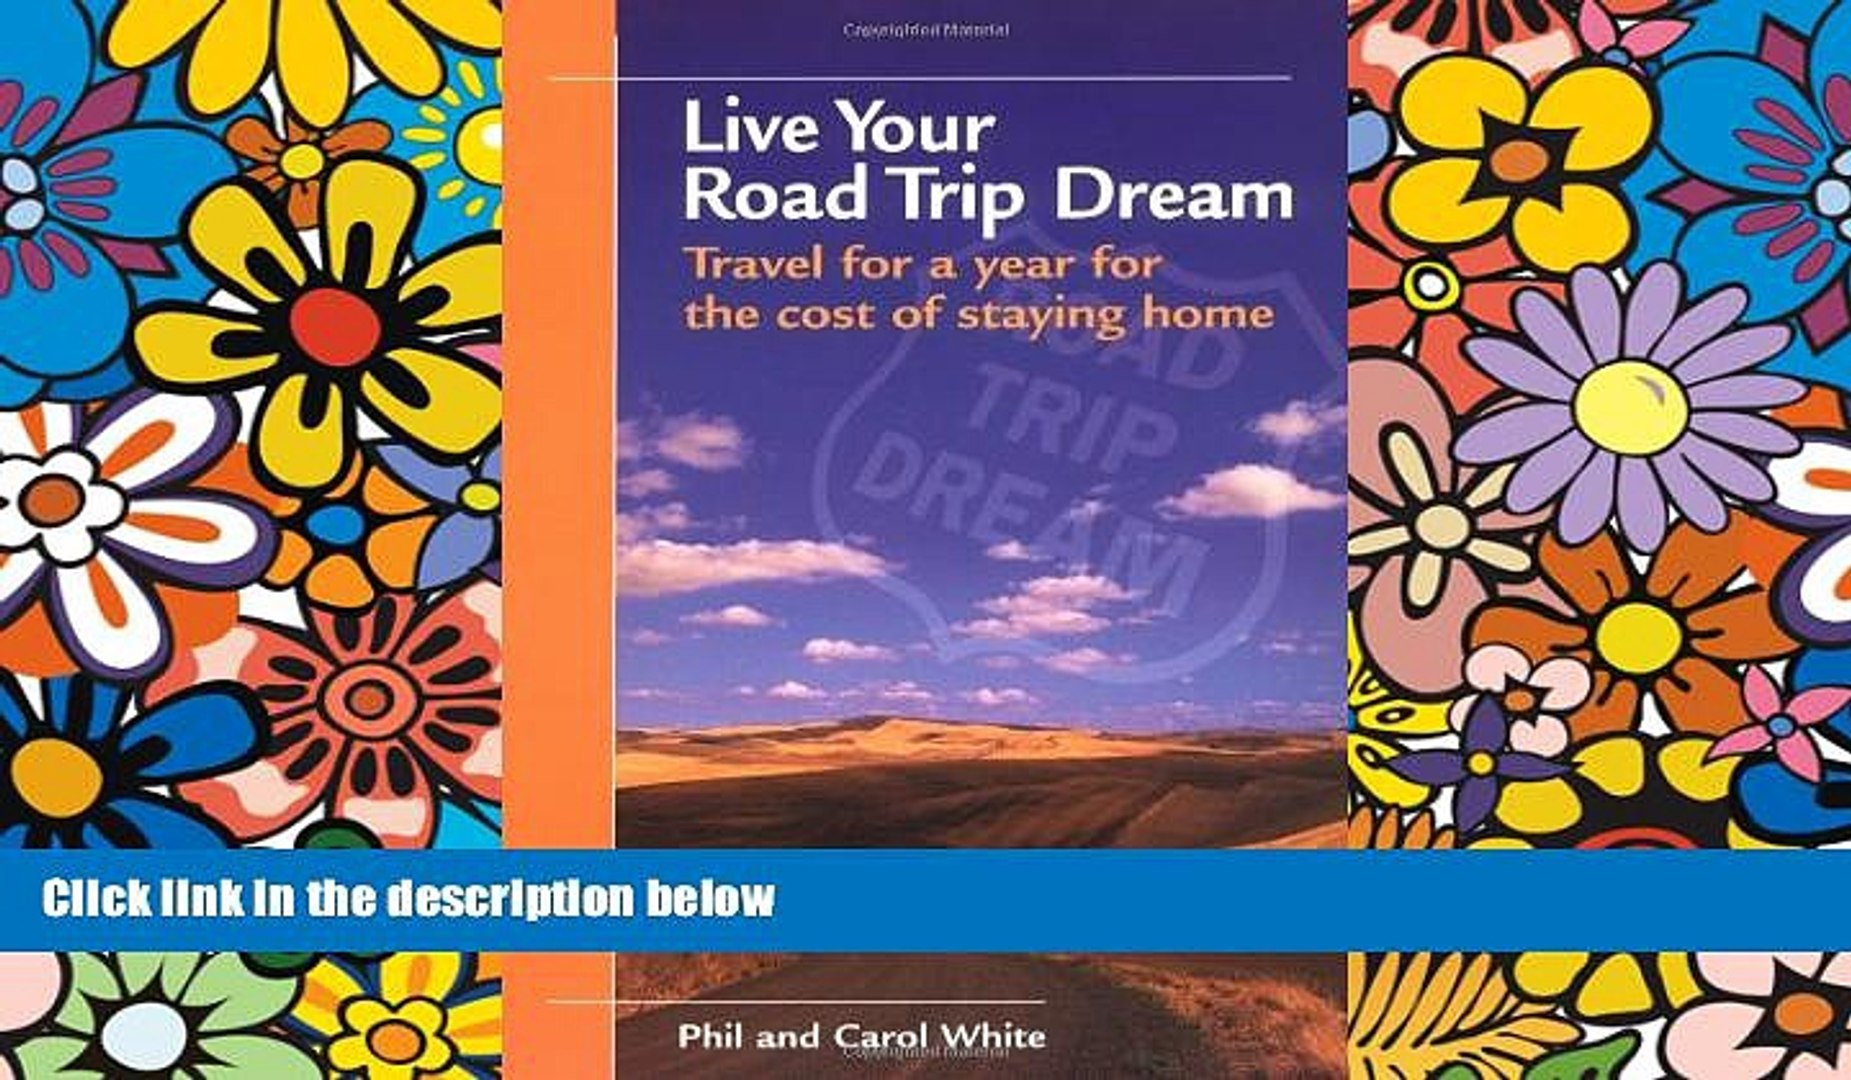 Live Your Road Trip Dream Travel for a year for the cost of staying home